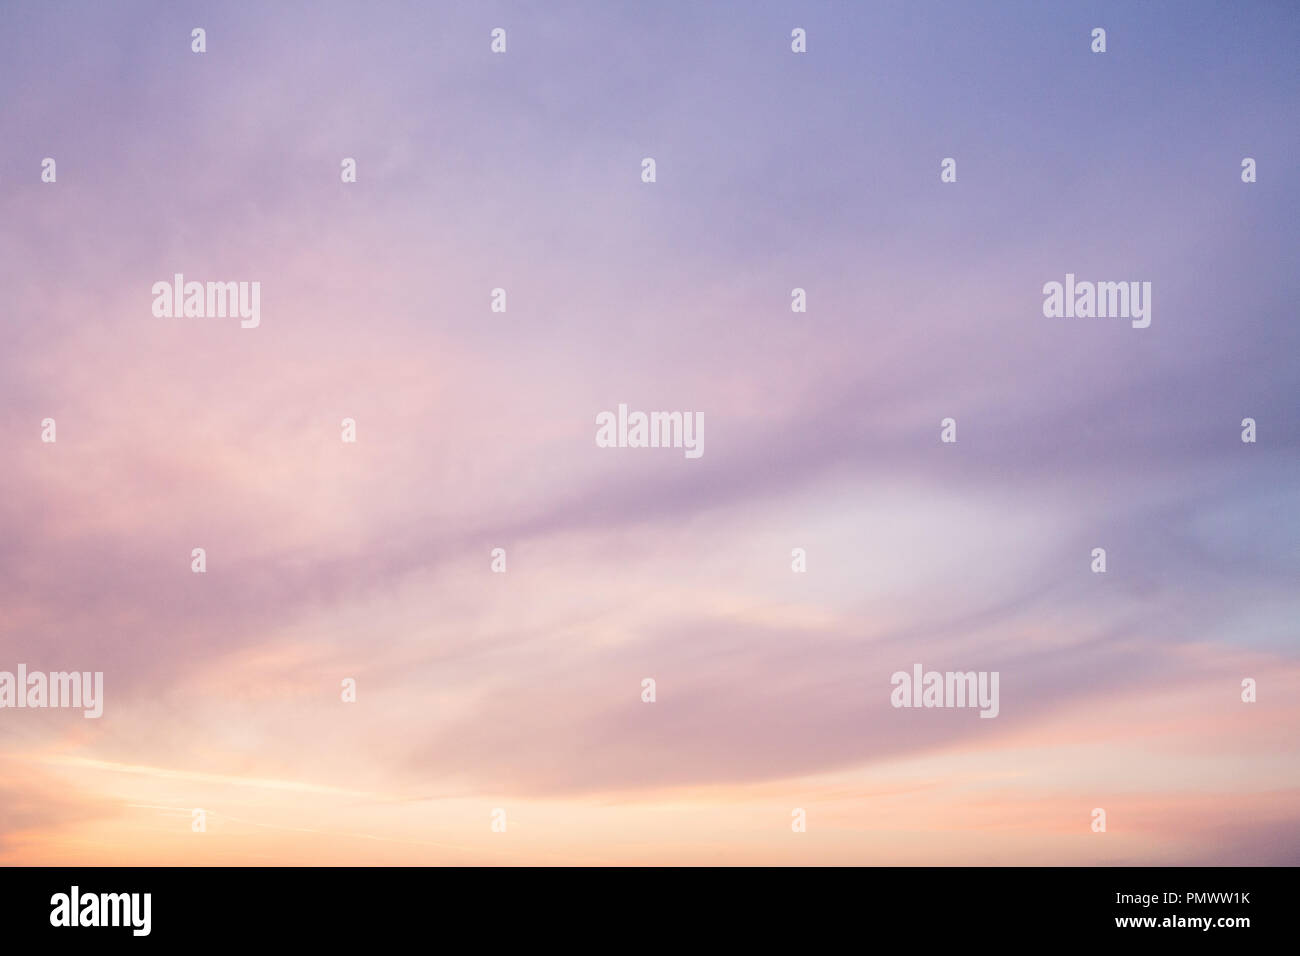 Soft hazy (blurry) clouds at sunset with pastel colours (colours) of yellows,  oranges, pinks, blues, and purples. The clouds fill the frame - Stock Image